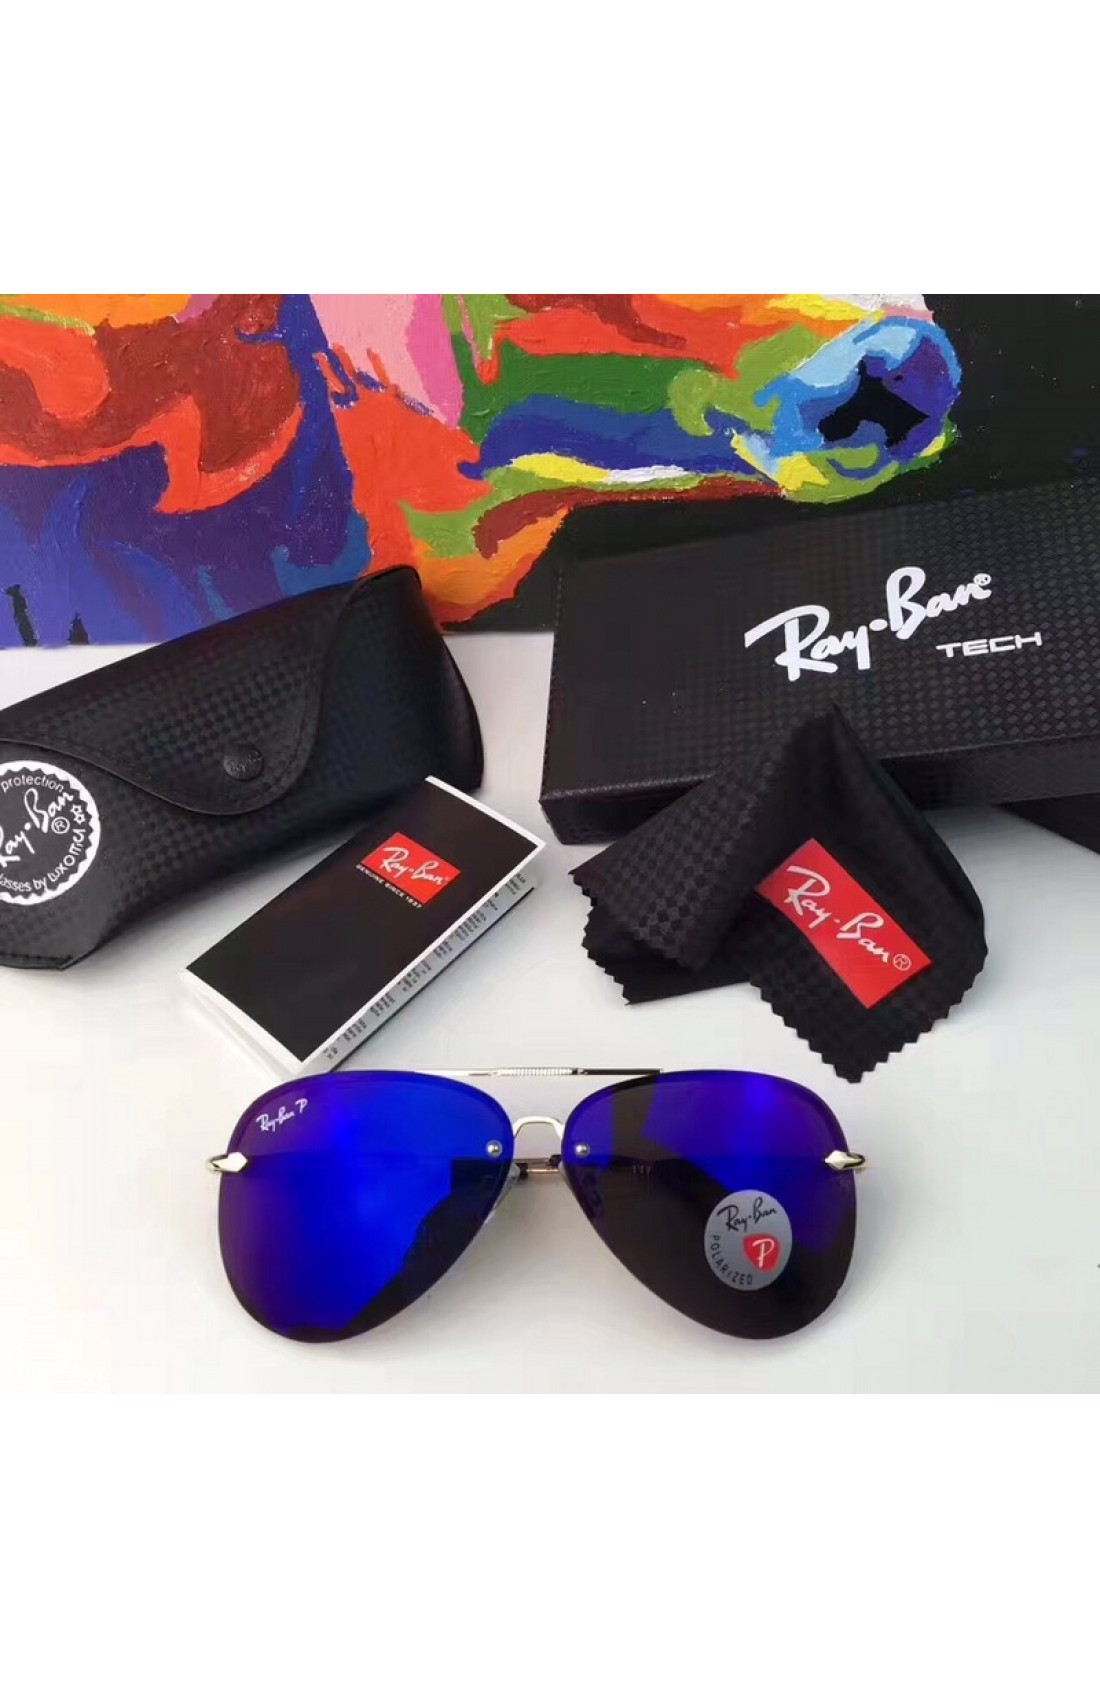 ac4cc07f192 Ray Ban Rb4151 Sunglasses Polarized « One More Soul